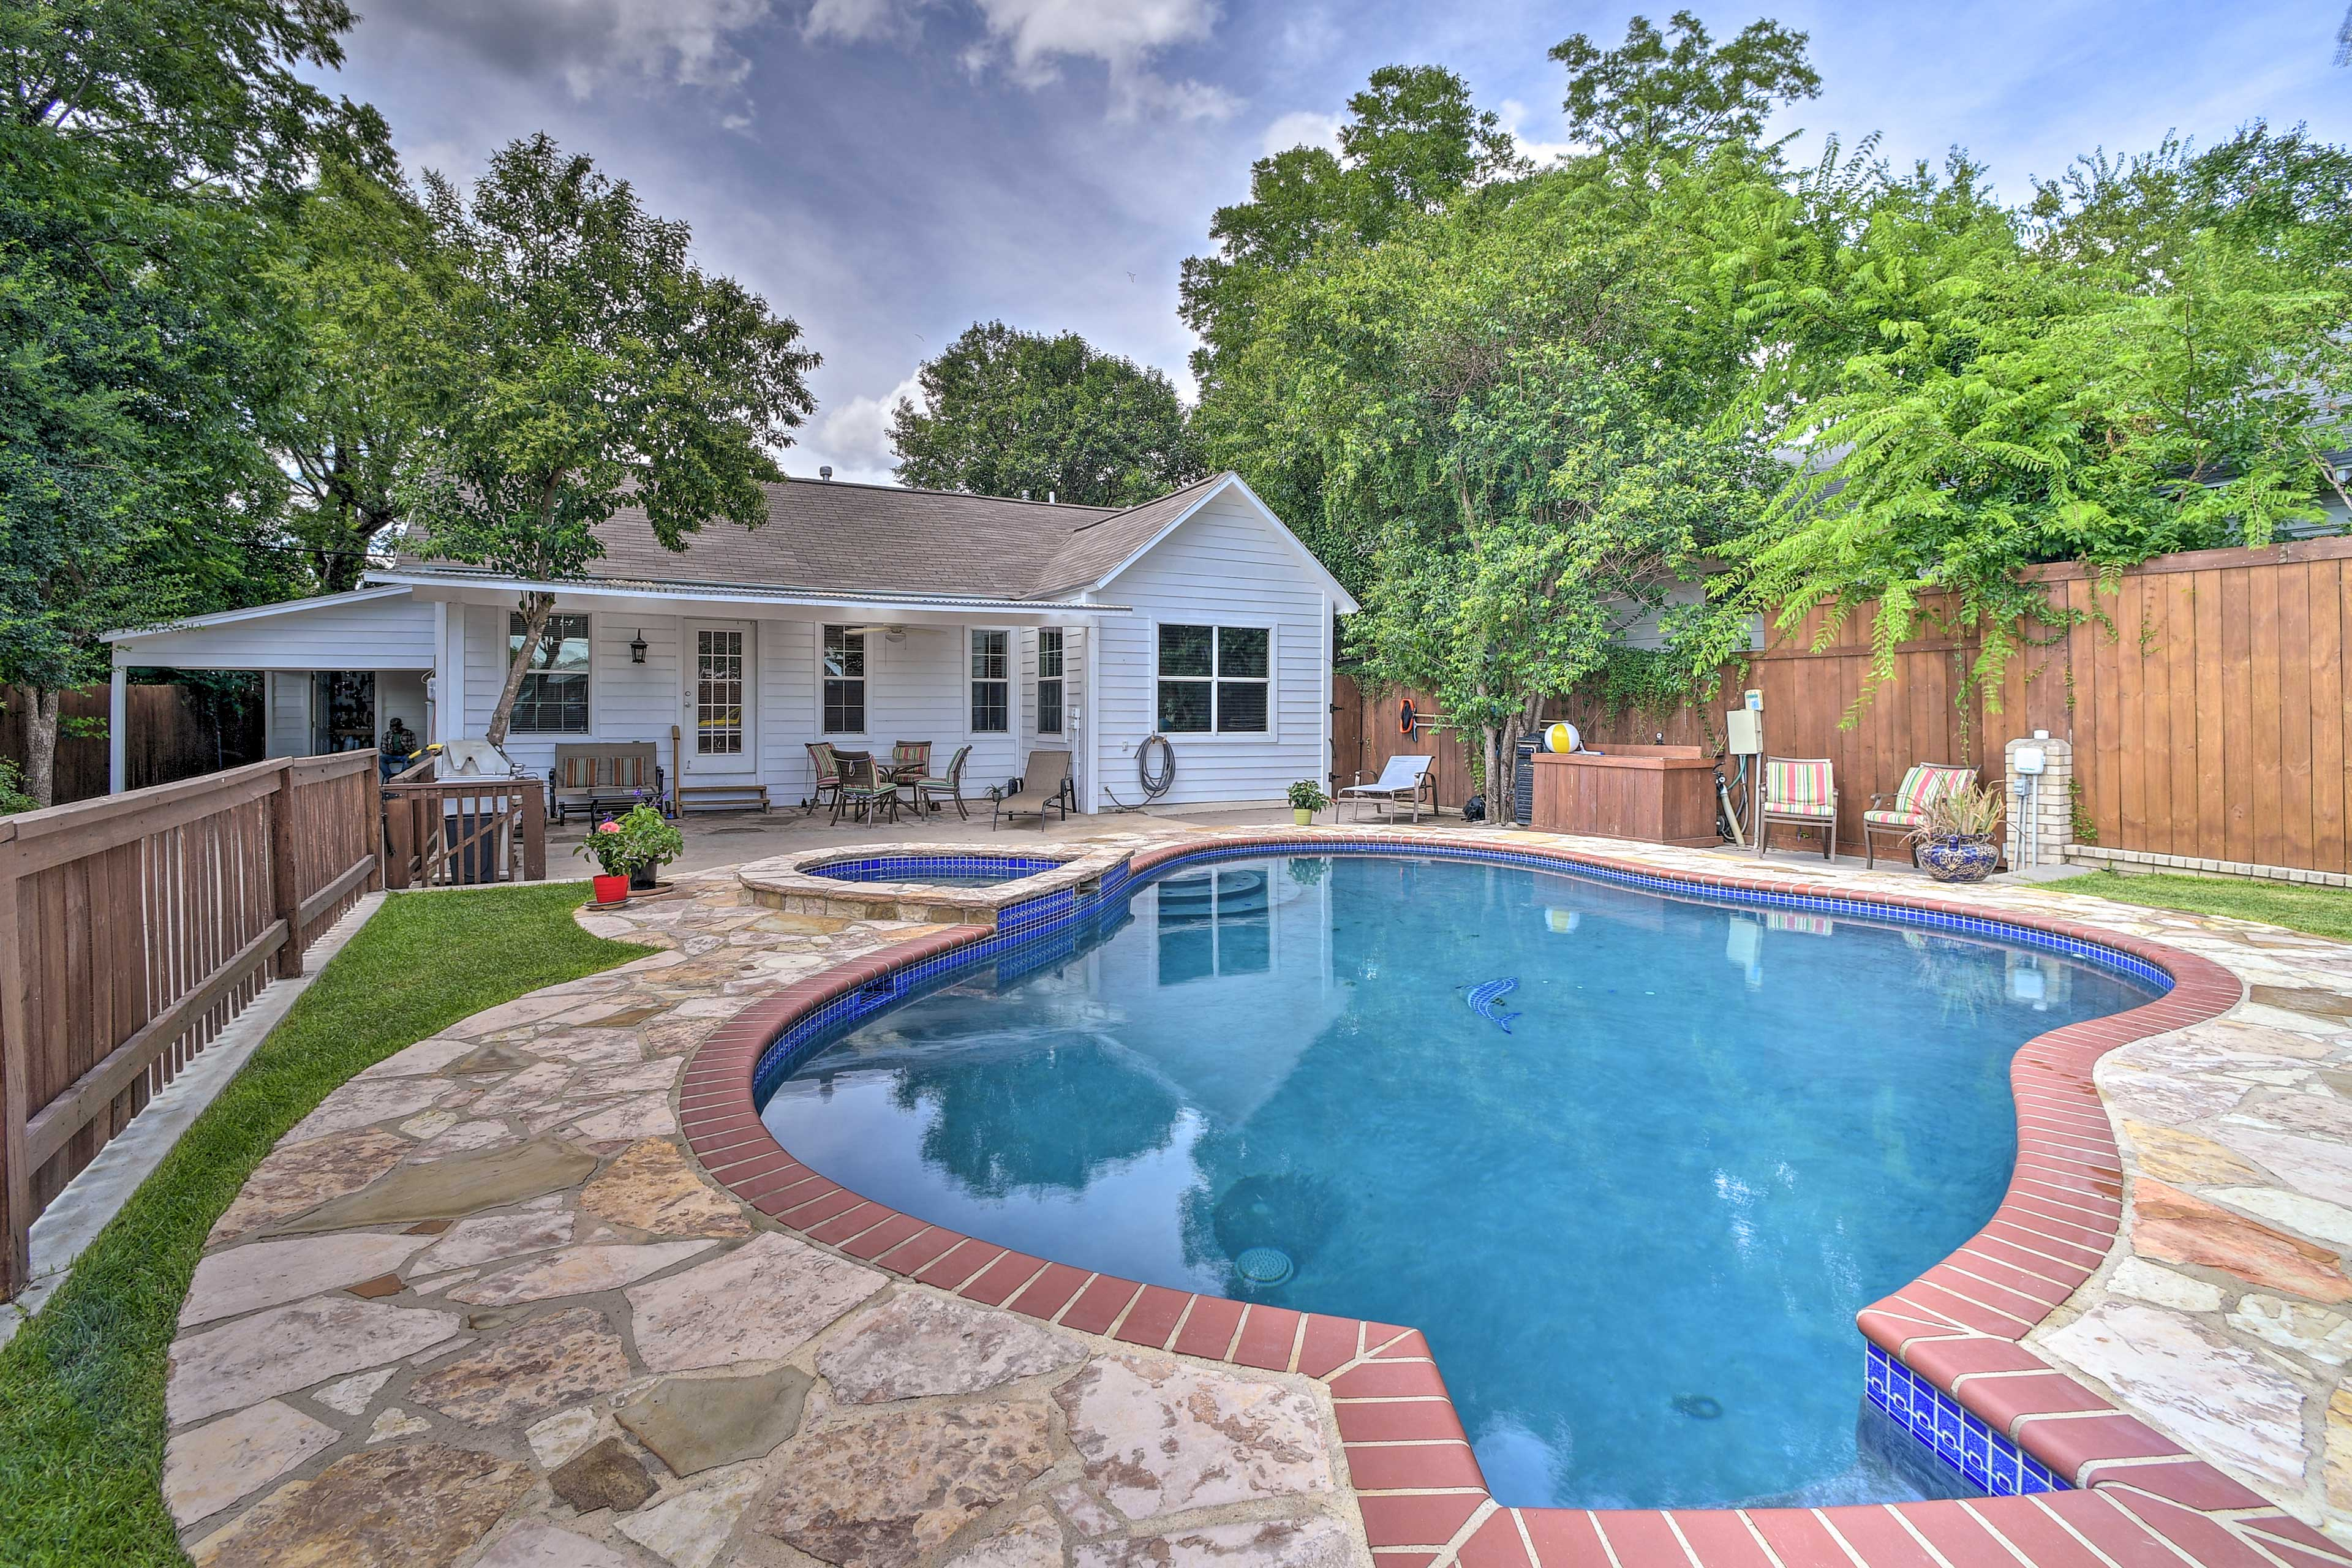 Take a dip in the private pool at this 3-bedroom, 3-bath home in San Antonio!